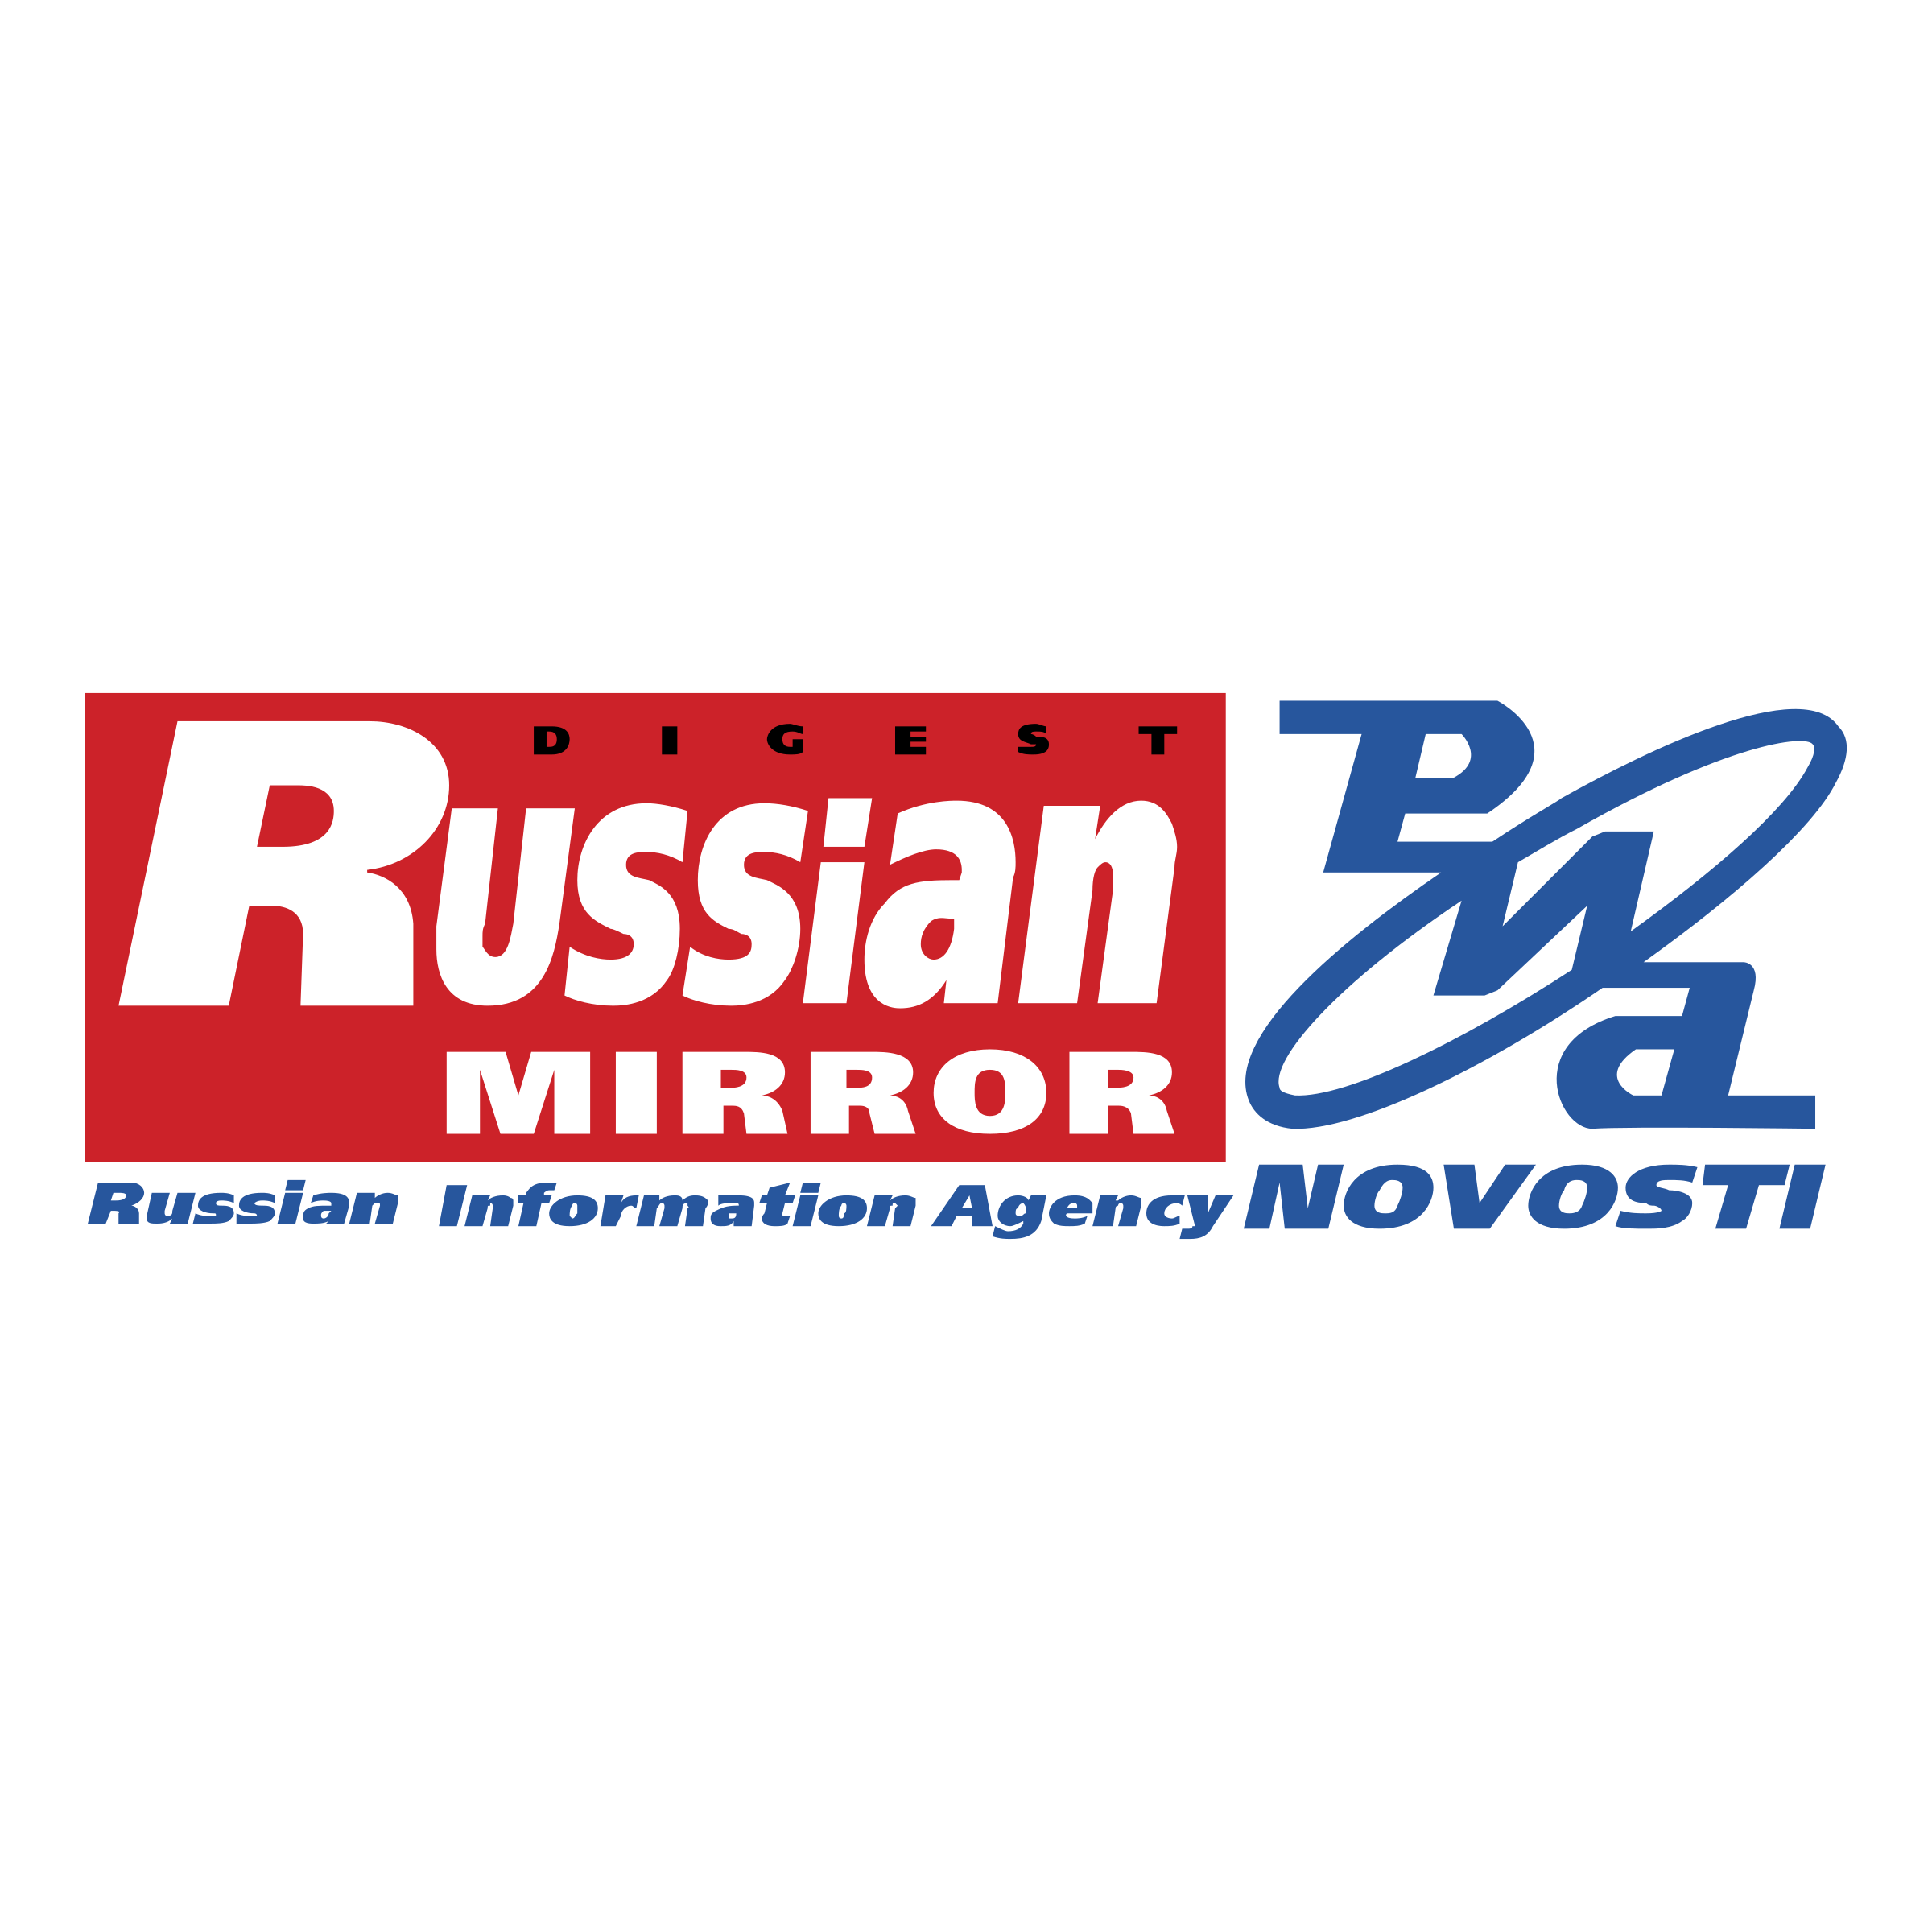 Royal vector mirror. Russian logo png transparent